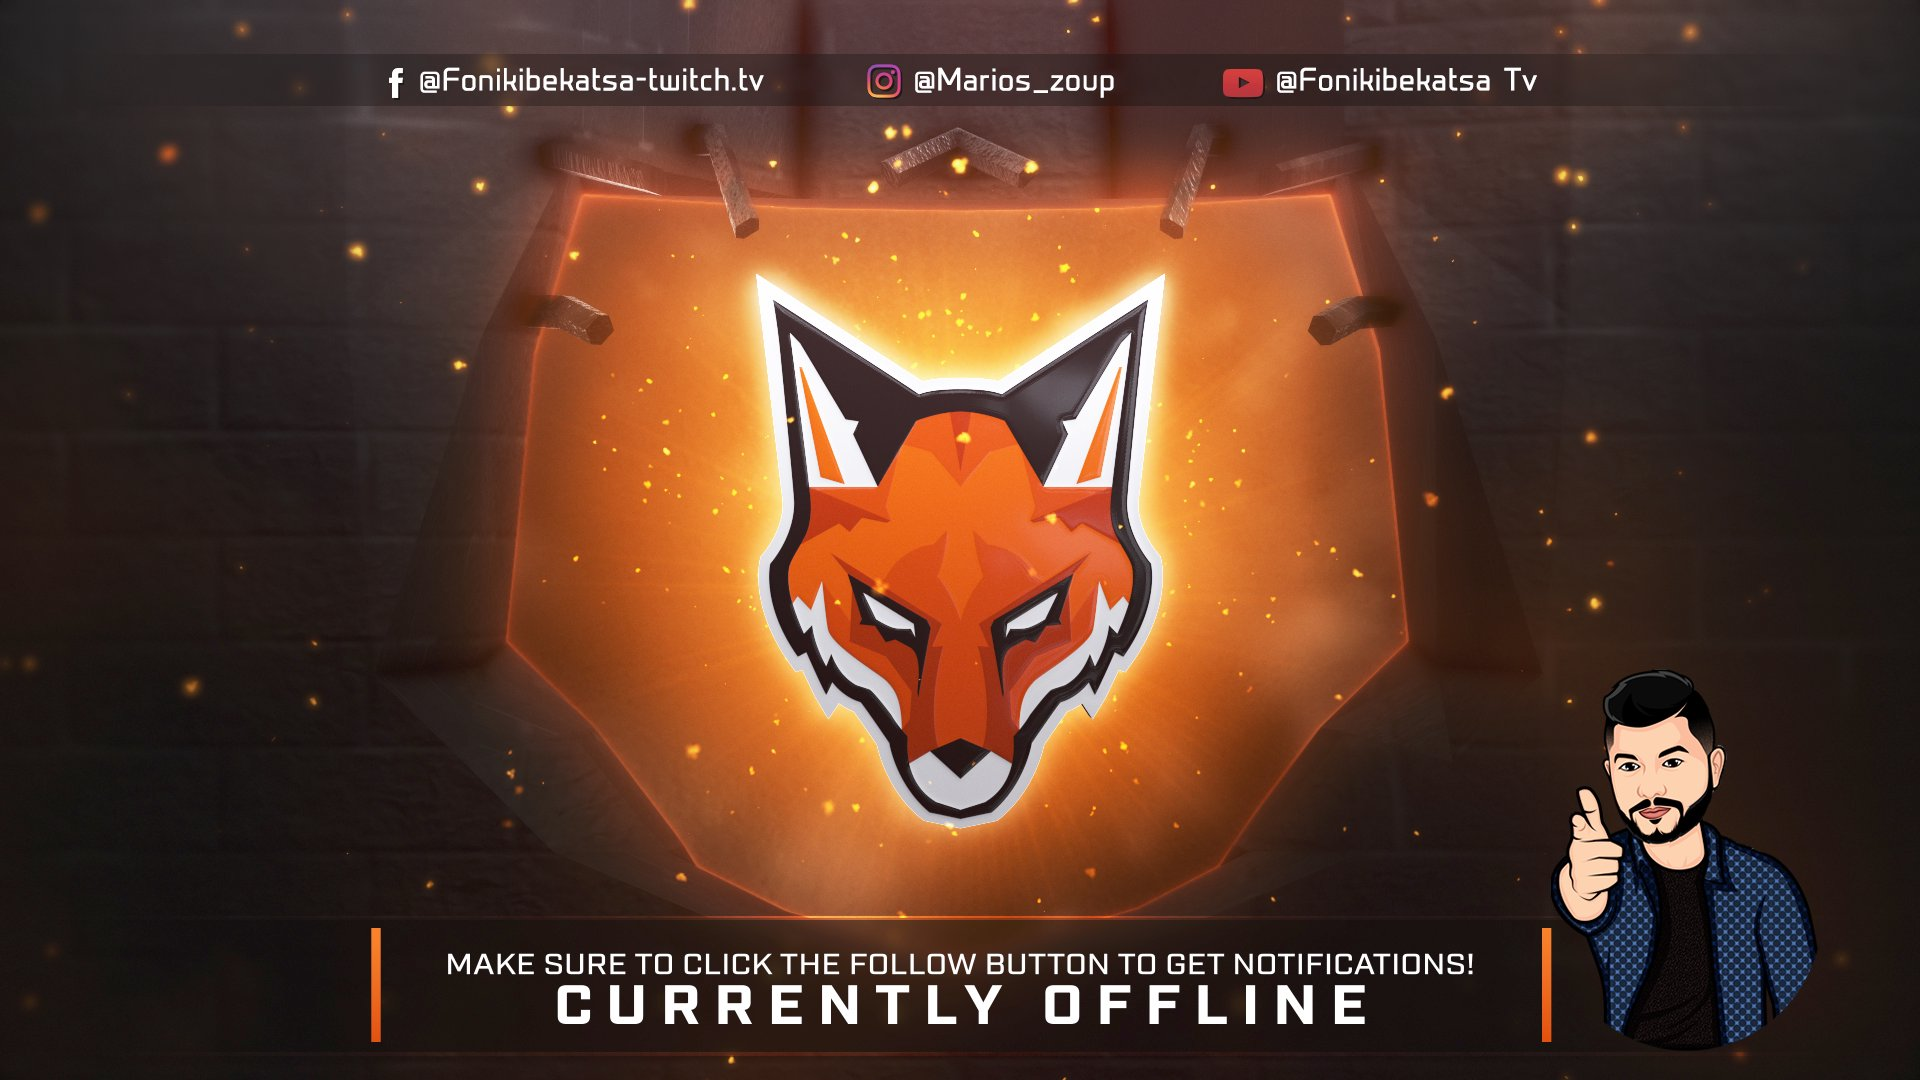 Twitch stream of Fonikibekatsa